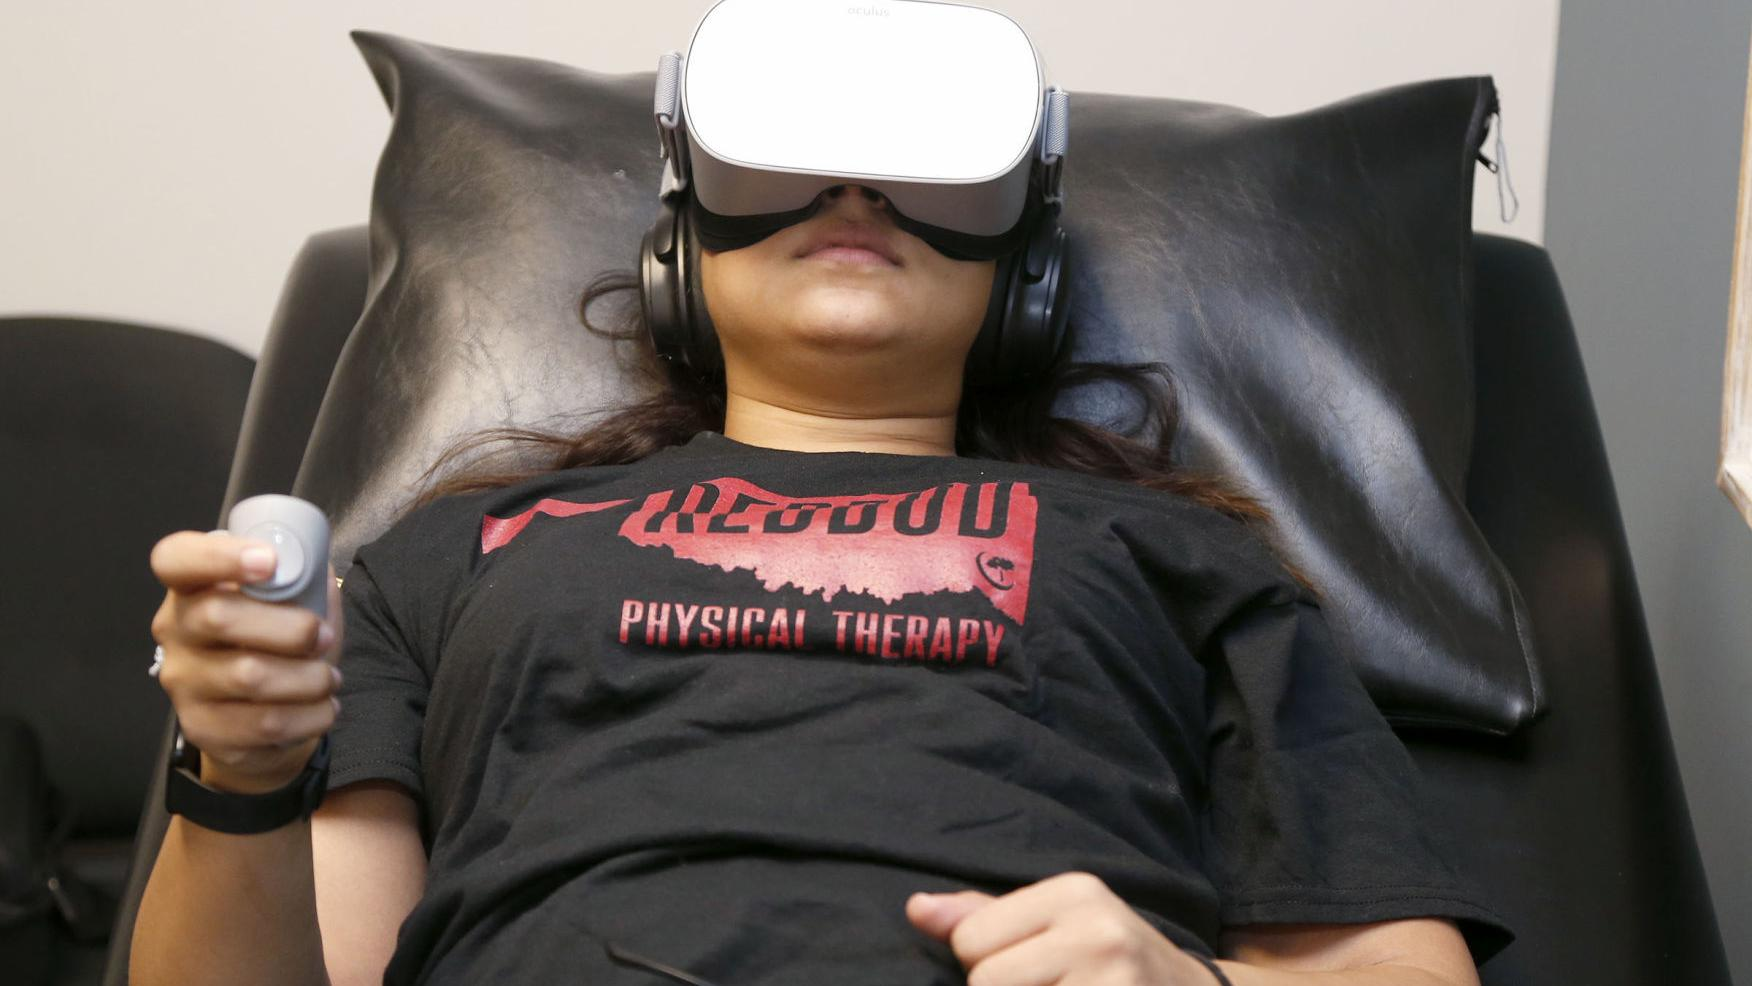 Physical therapy program incorporates virtual reality into pain management treatment | Work & Money